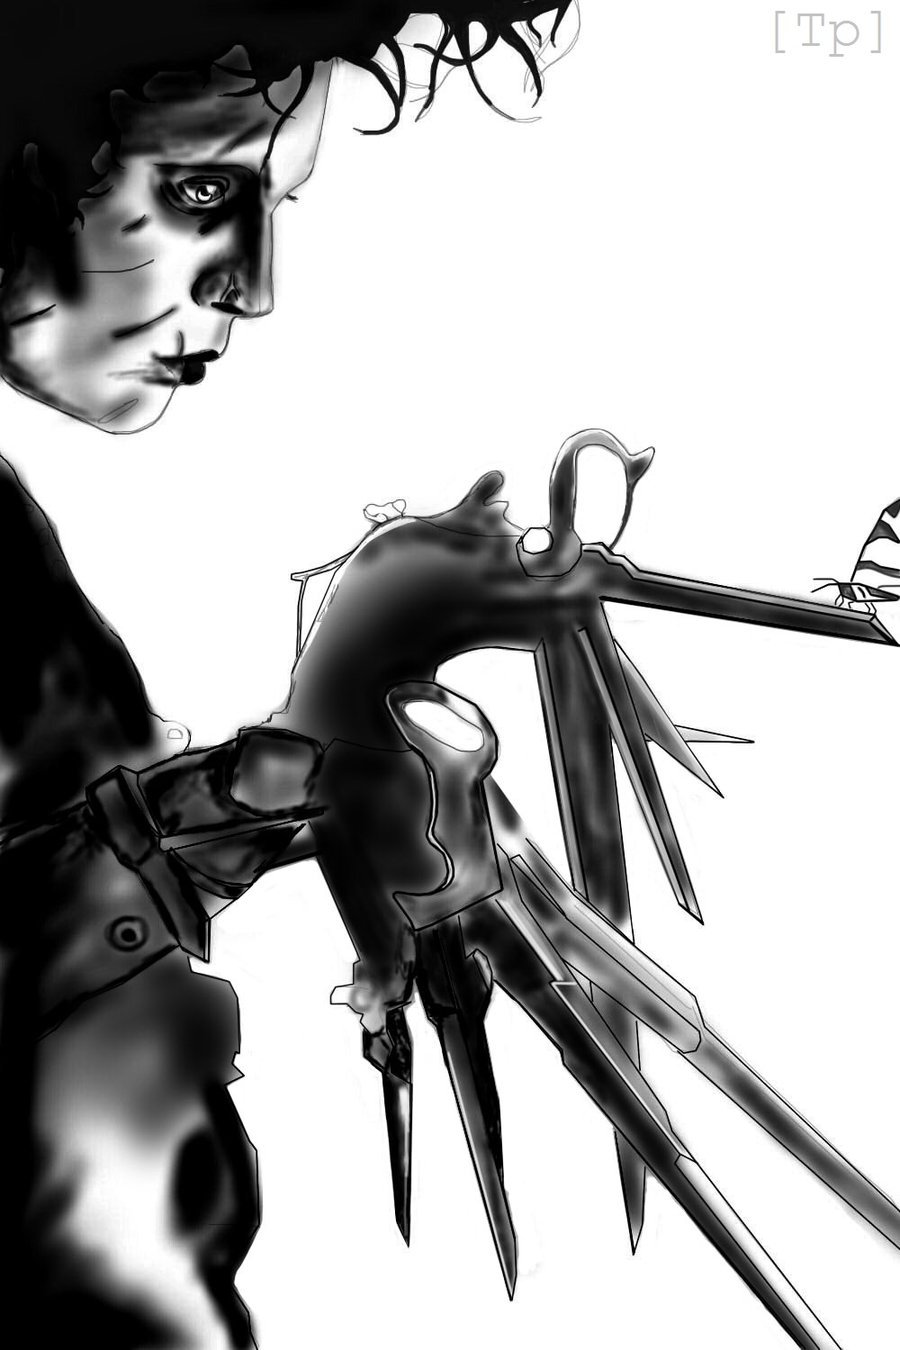 Free Download Edward Scissorhands By Tinklepiss 900x1350 For